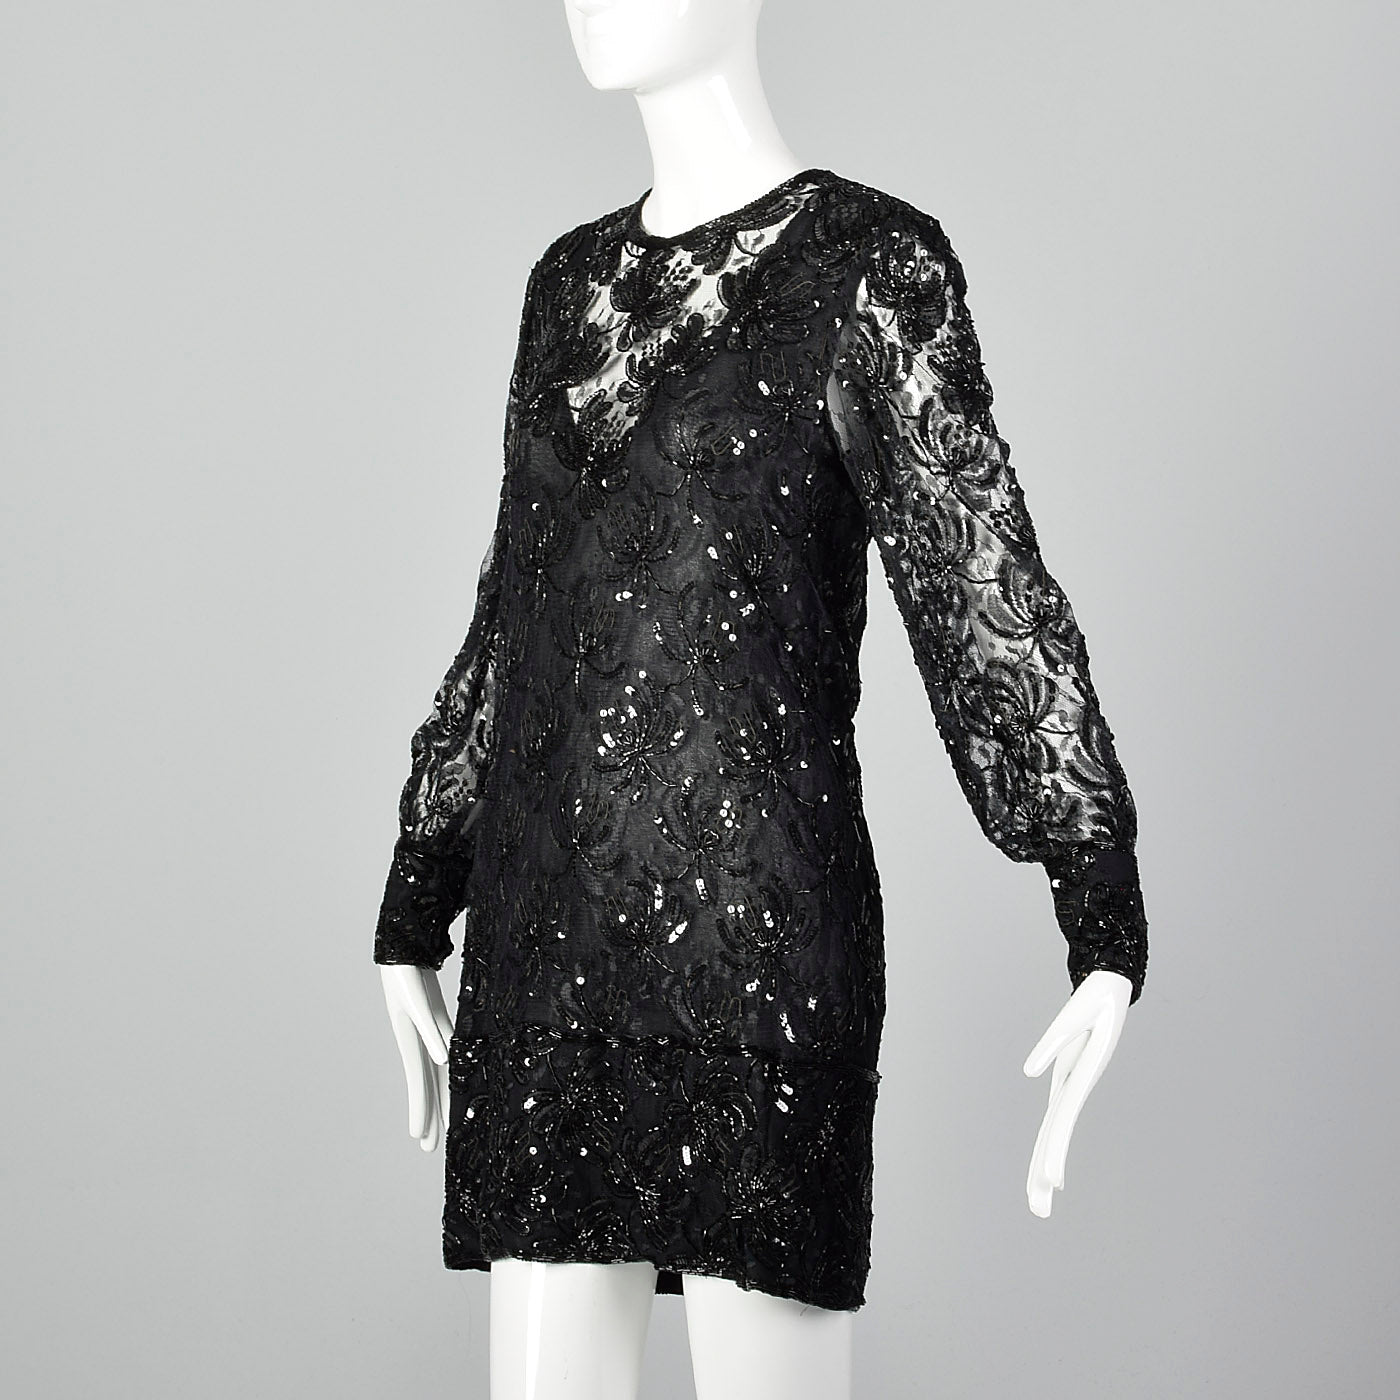 1970s Judith Ann Black Beaded Dress